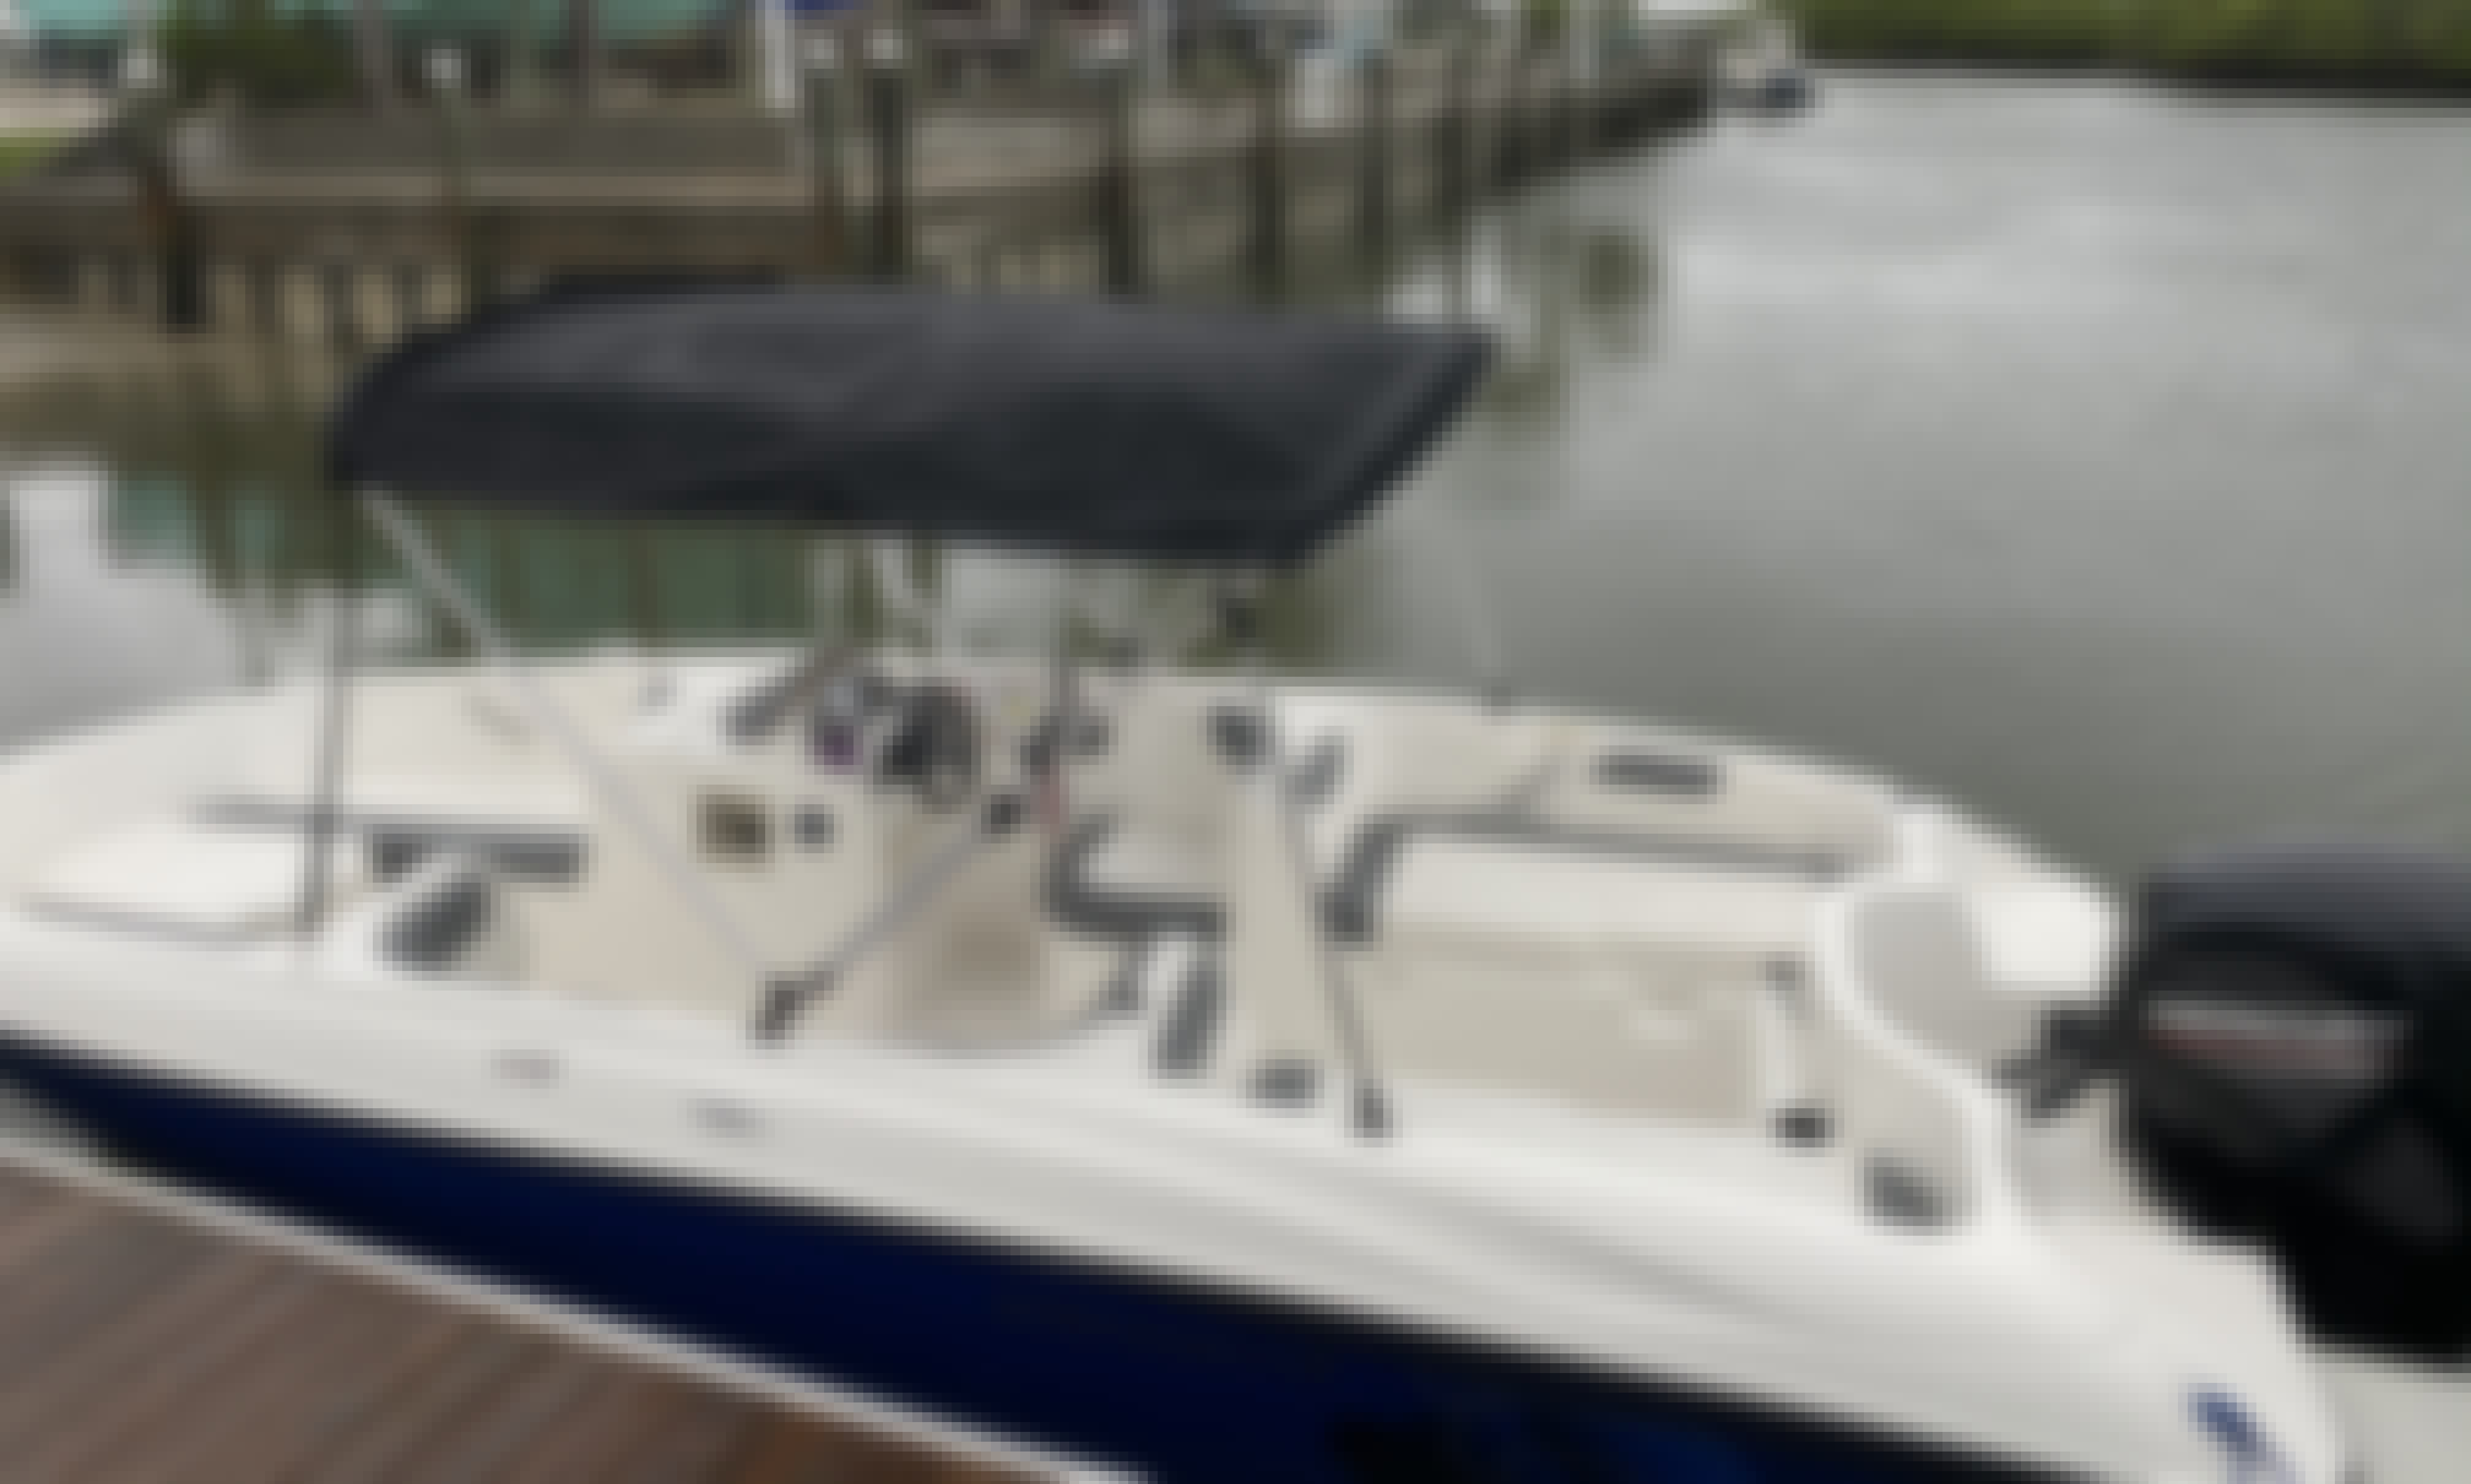 BRAND NEW 2020 Bayliner Deck Boat with 115 Mercury in Tarpon Springs, Florida